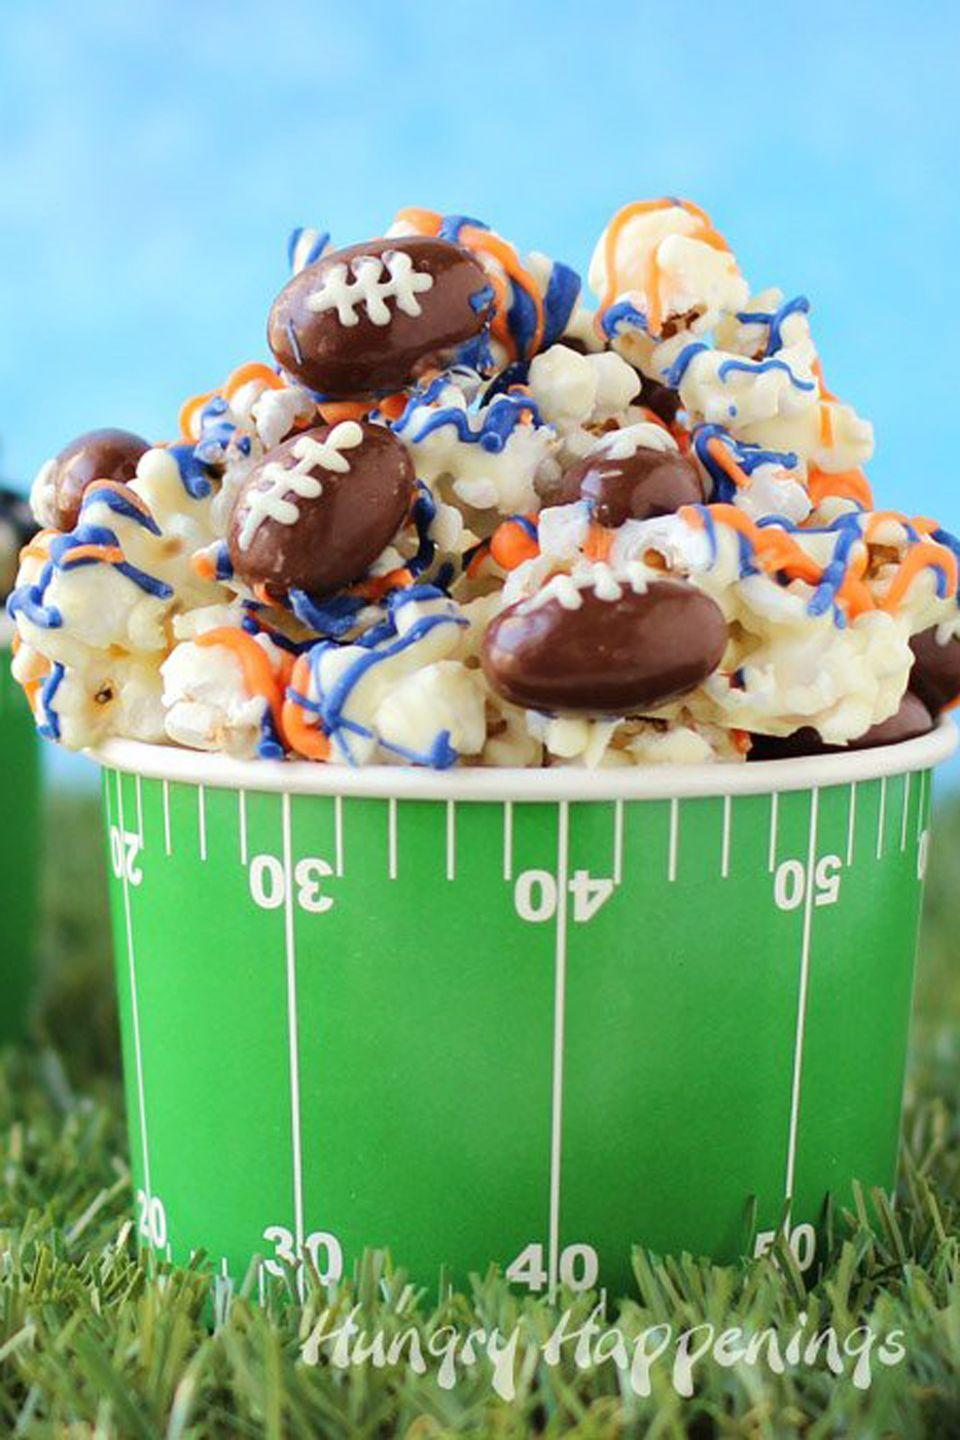 """<p>Customize this white chocolate popcorn with your favorite team's colors.</p><p><strong>Get the recipe at <a href=""""http://hungryhappenings.com/super-bowl-popcorn-with-chocolate-almond-footballs.html/"""" rel=""""nofollow noopener"""" target=""""_blank"""" data-ylk=""""slk:Hungry Happenings"""" class=""""link rapid-noclick-resp"""">Hungry Happenings</a>.</strong></p>"""